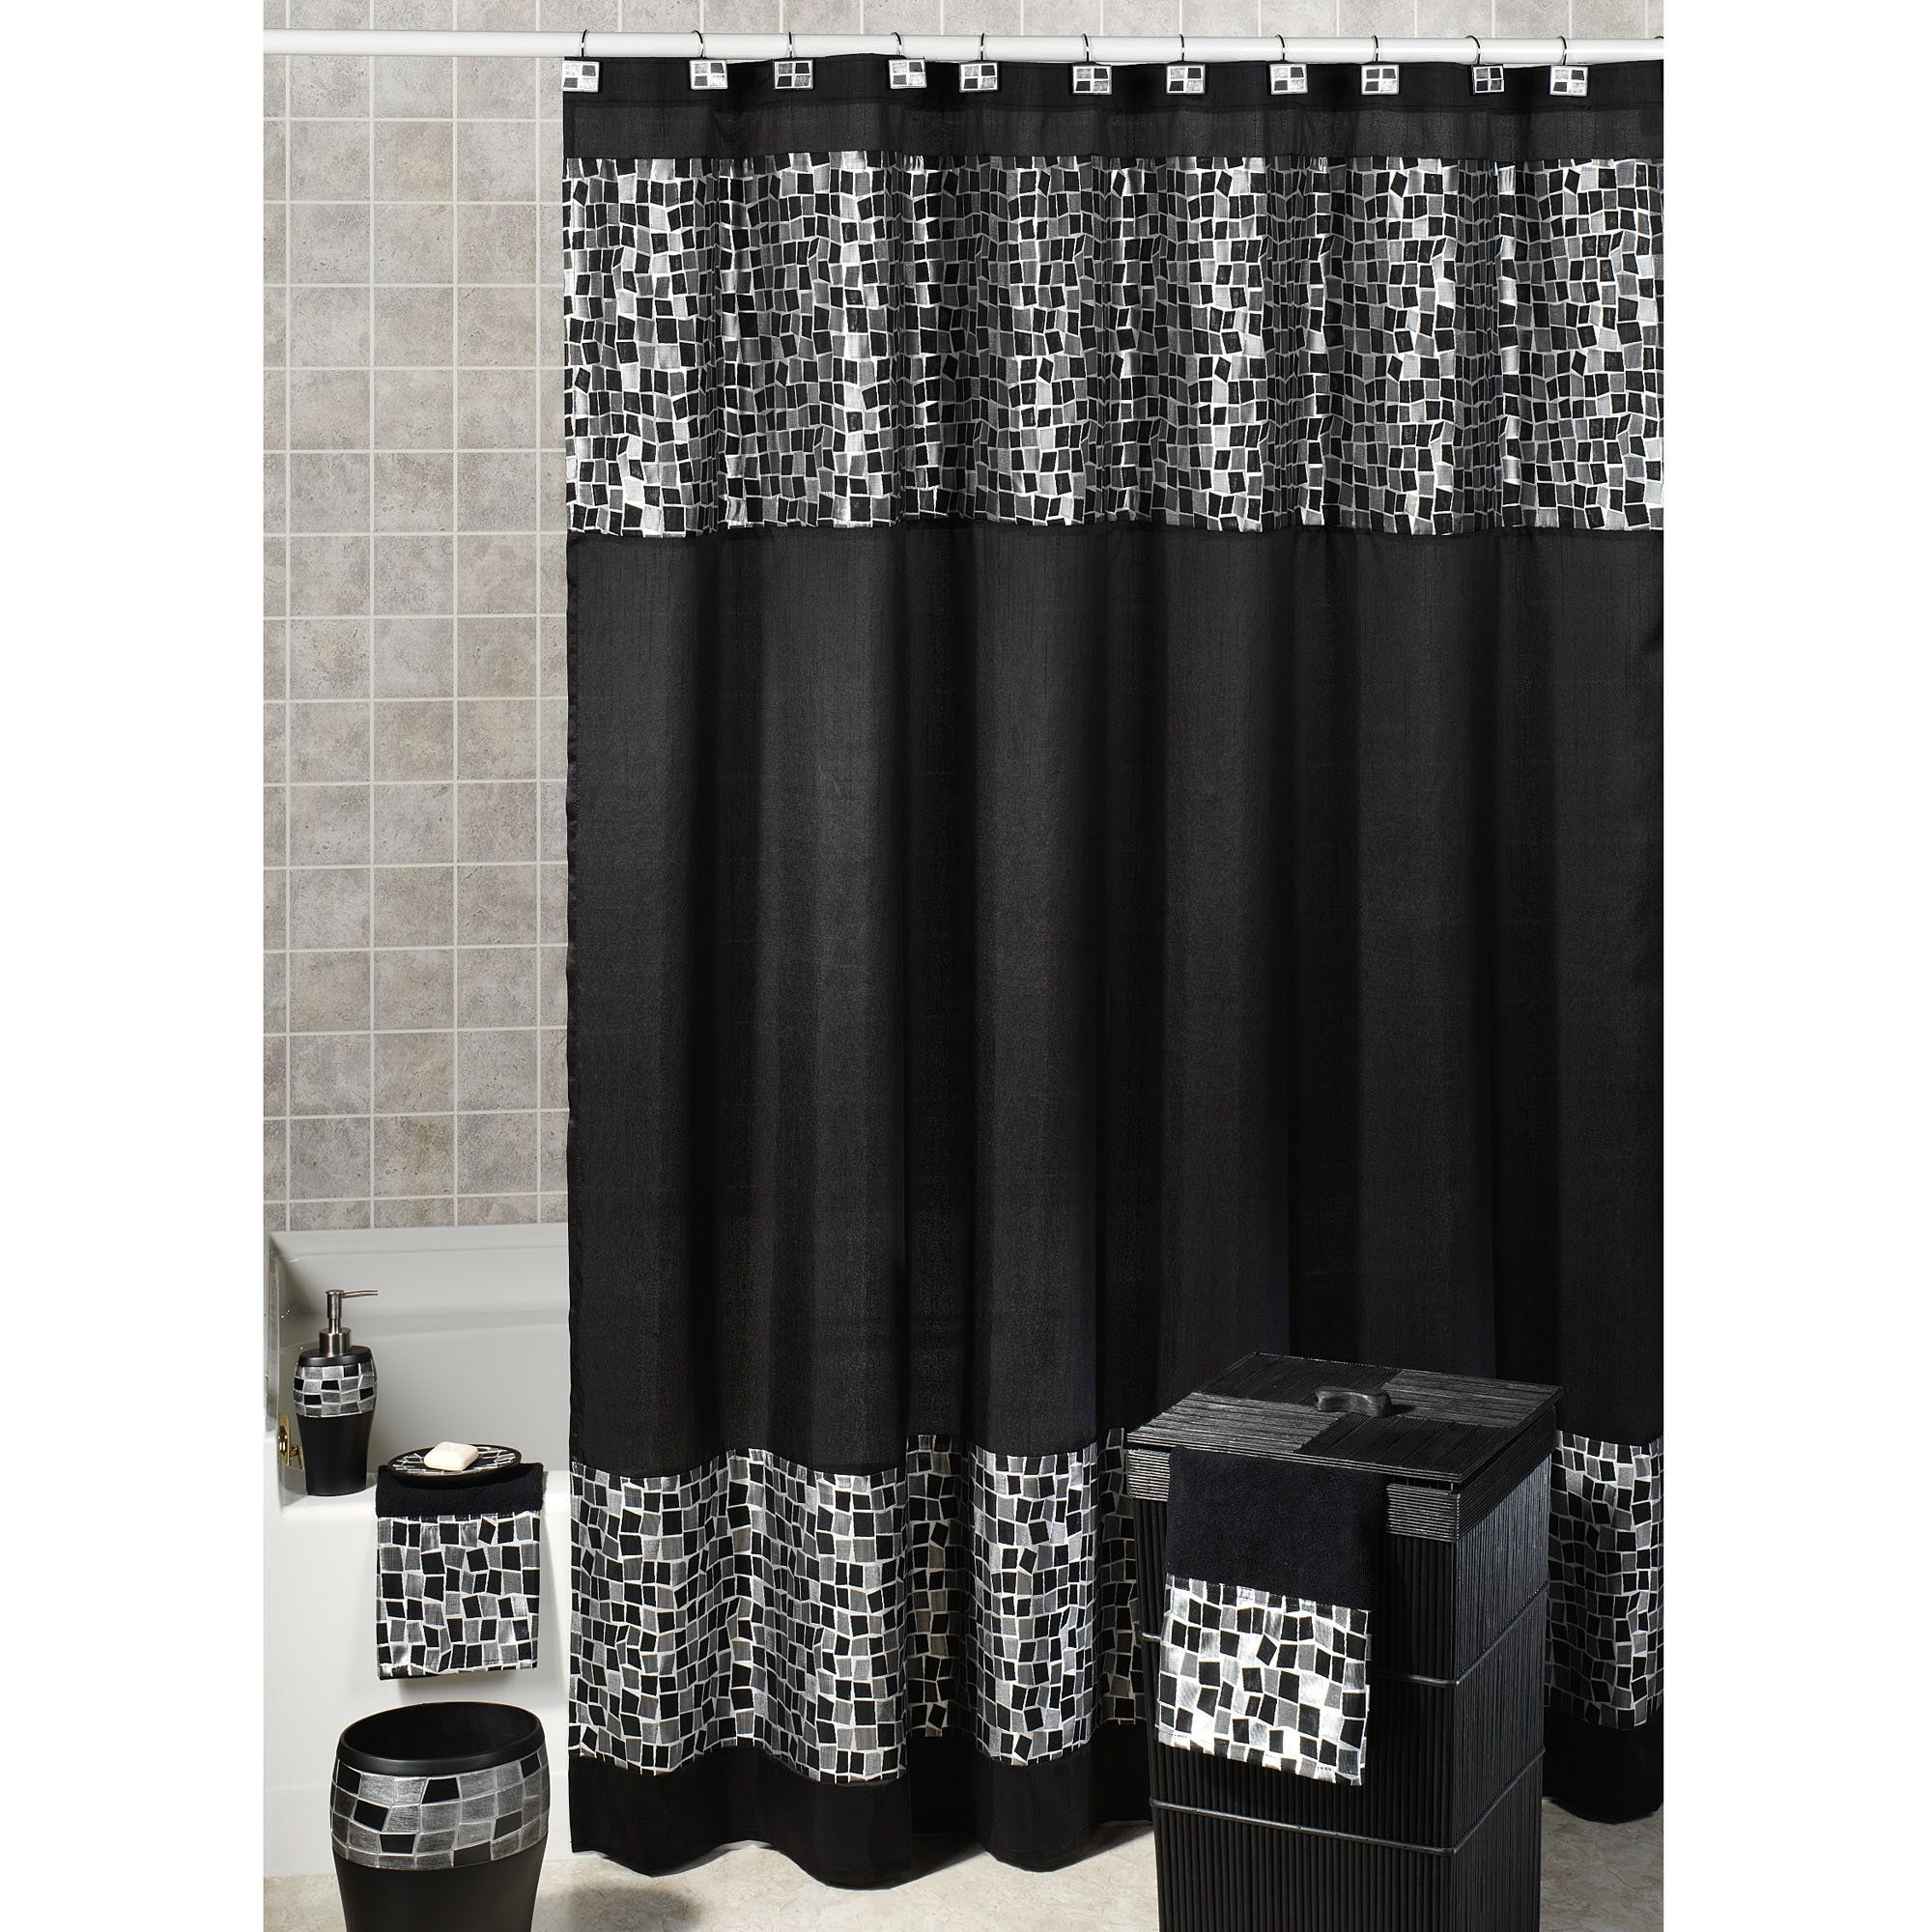 Dark knight shower curtain - Black Solid Sequin Shower Curtain